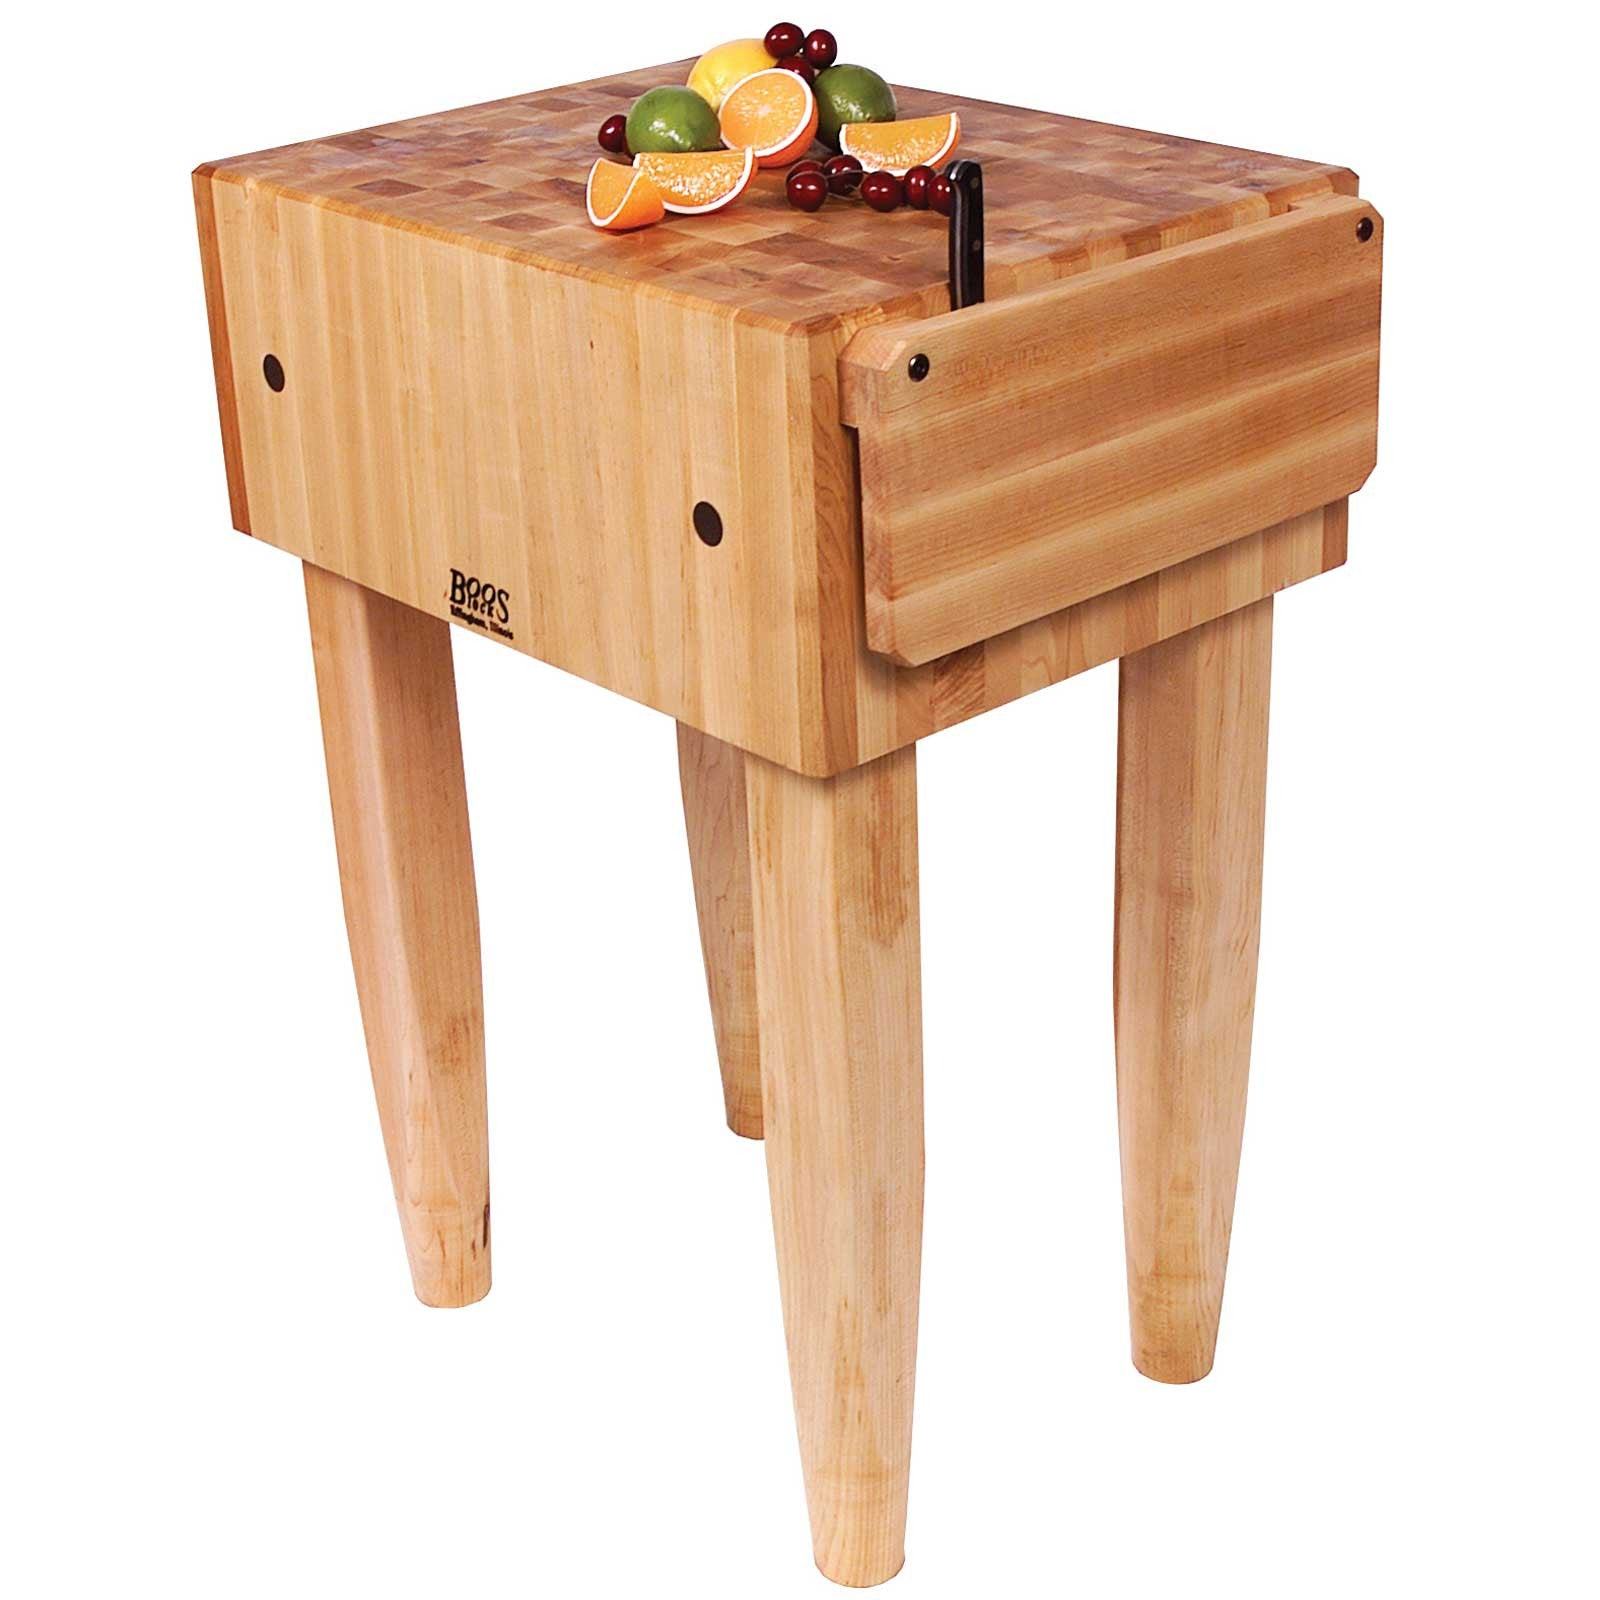 "John Boos 24"" x 18"" x 10"" Maple Top PCA Butcher Block"